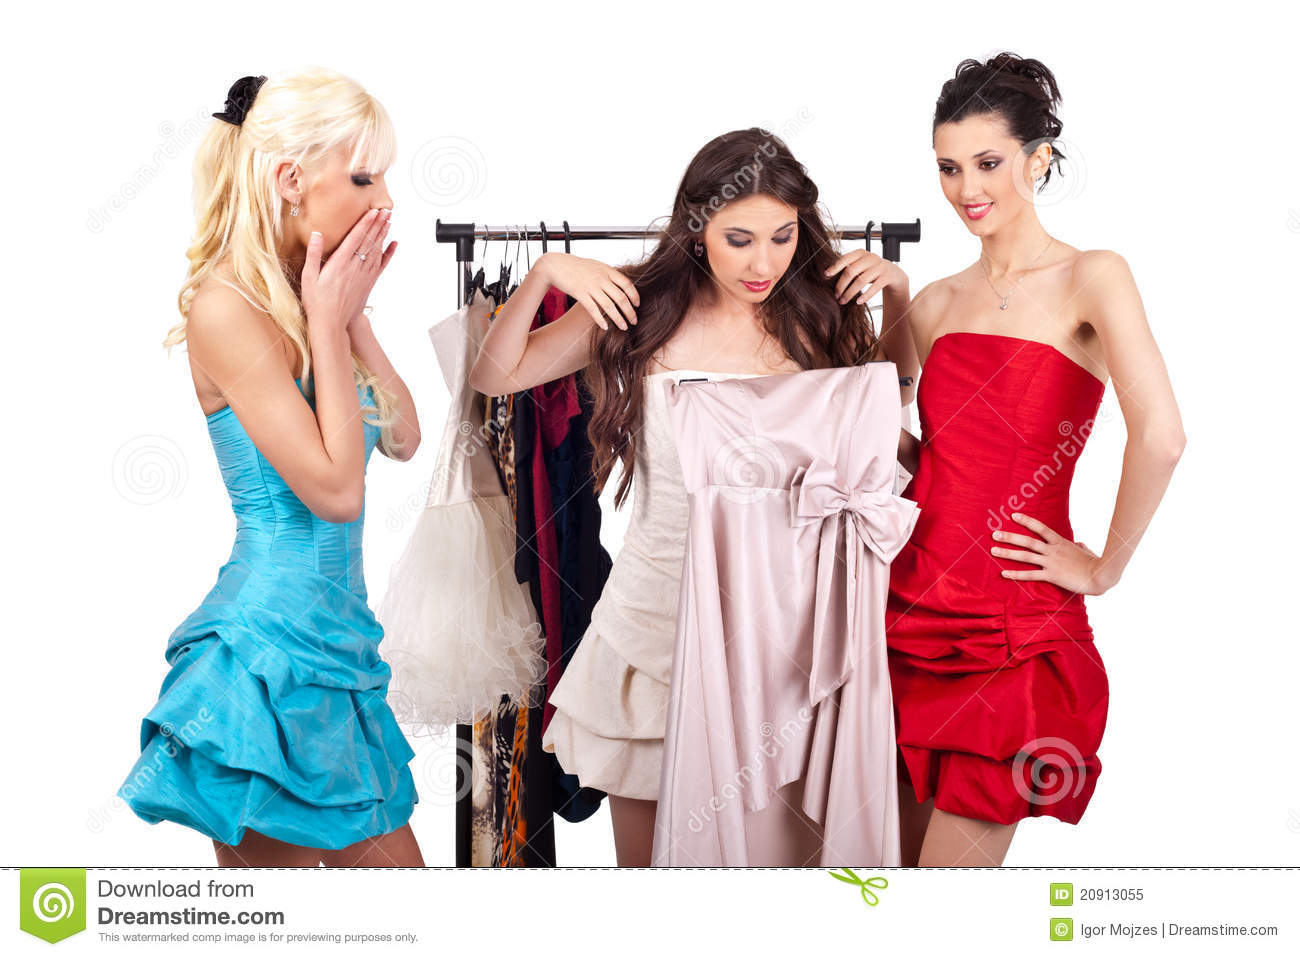 Online shopping of girl dresses